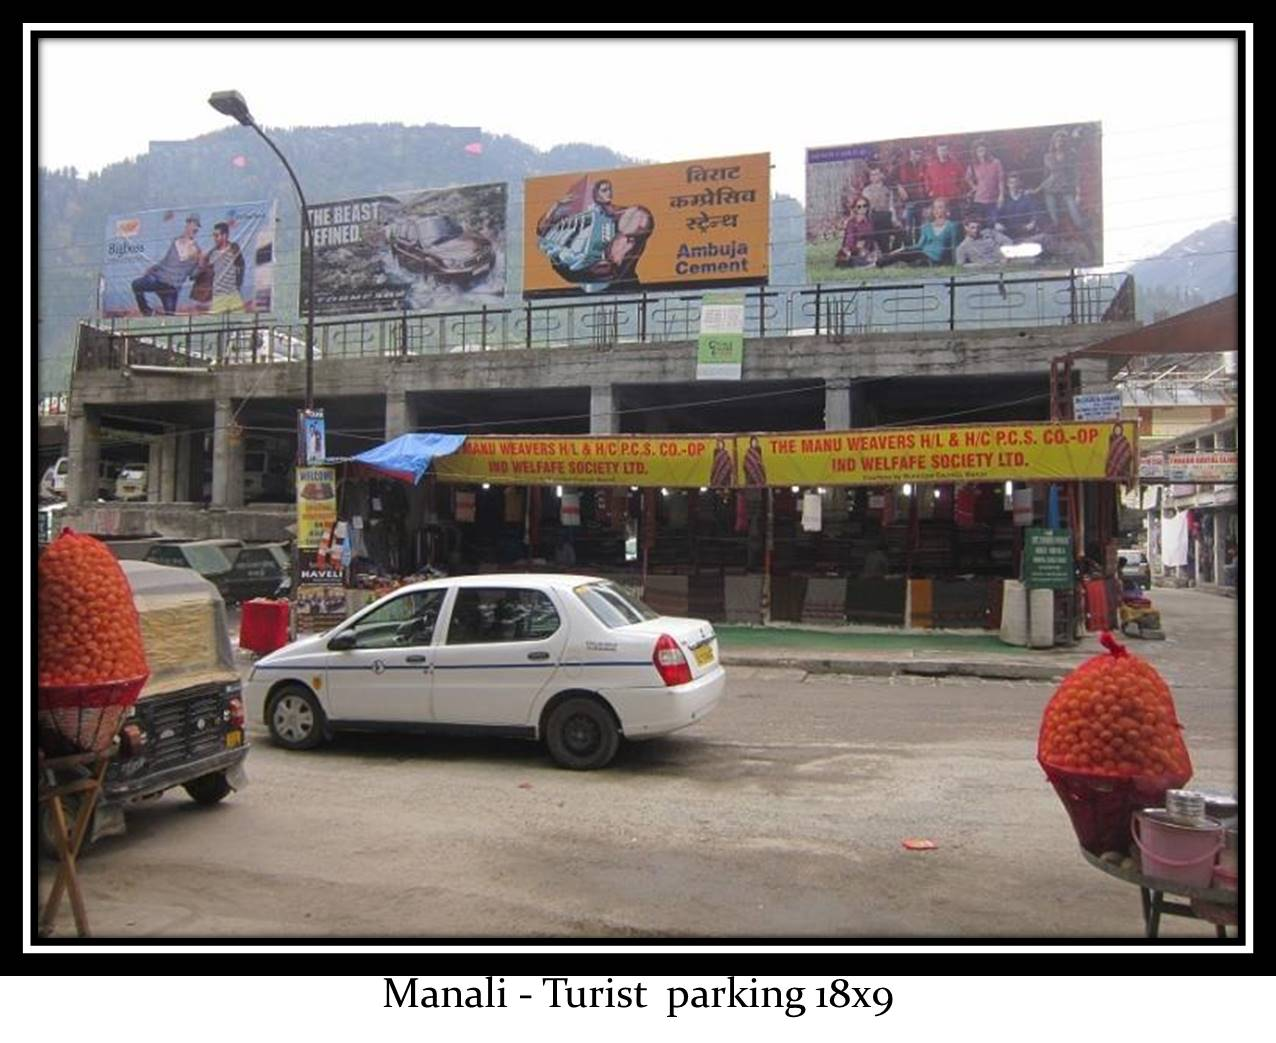 Turiest parking, Manali